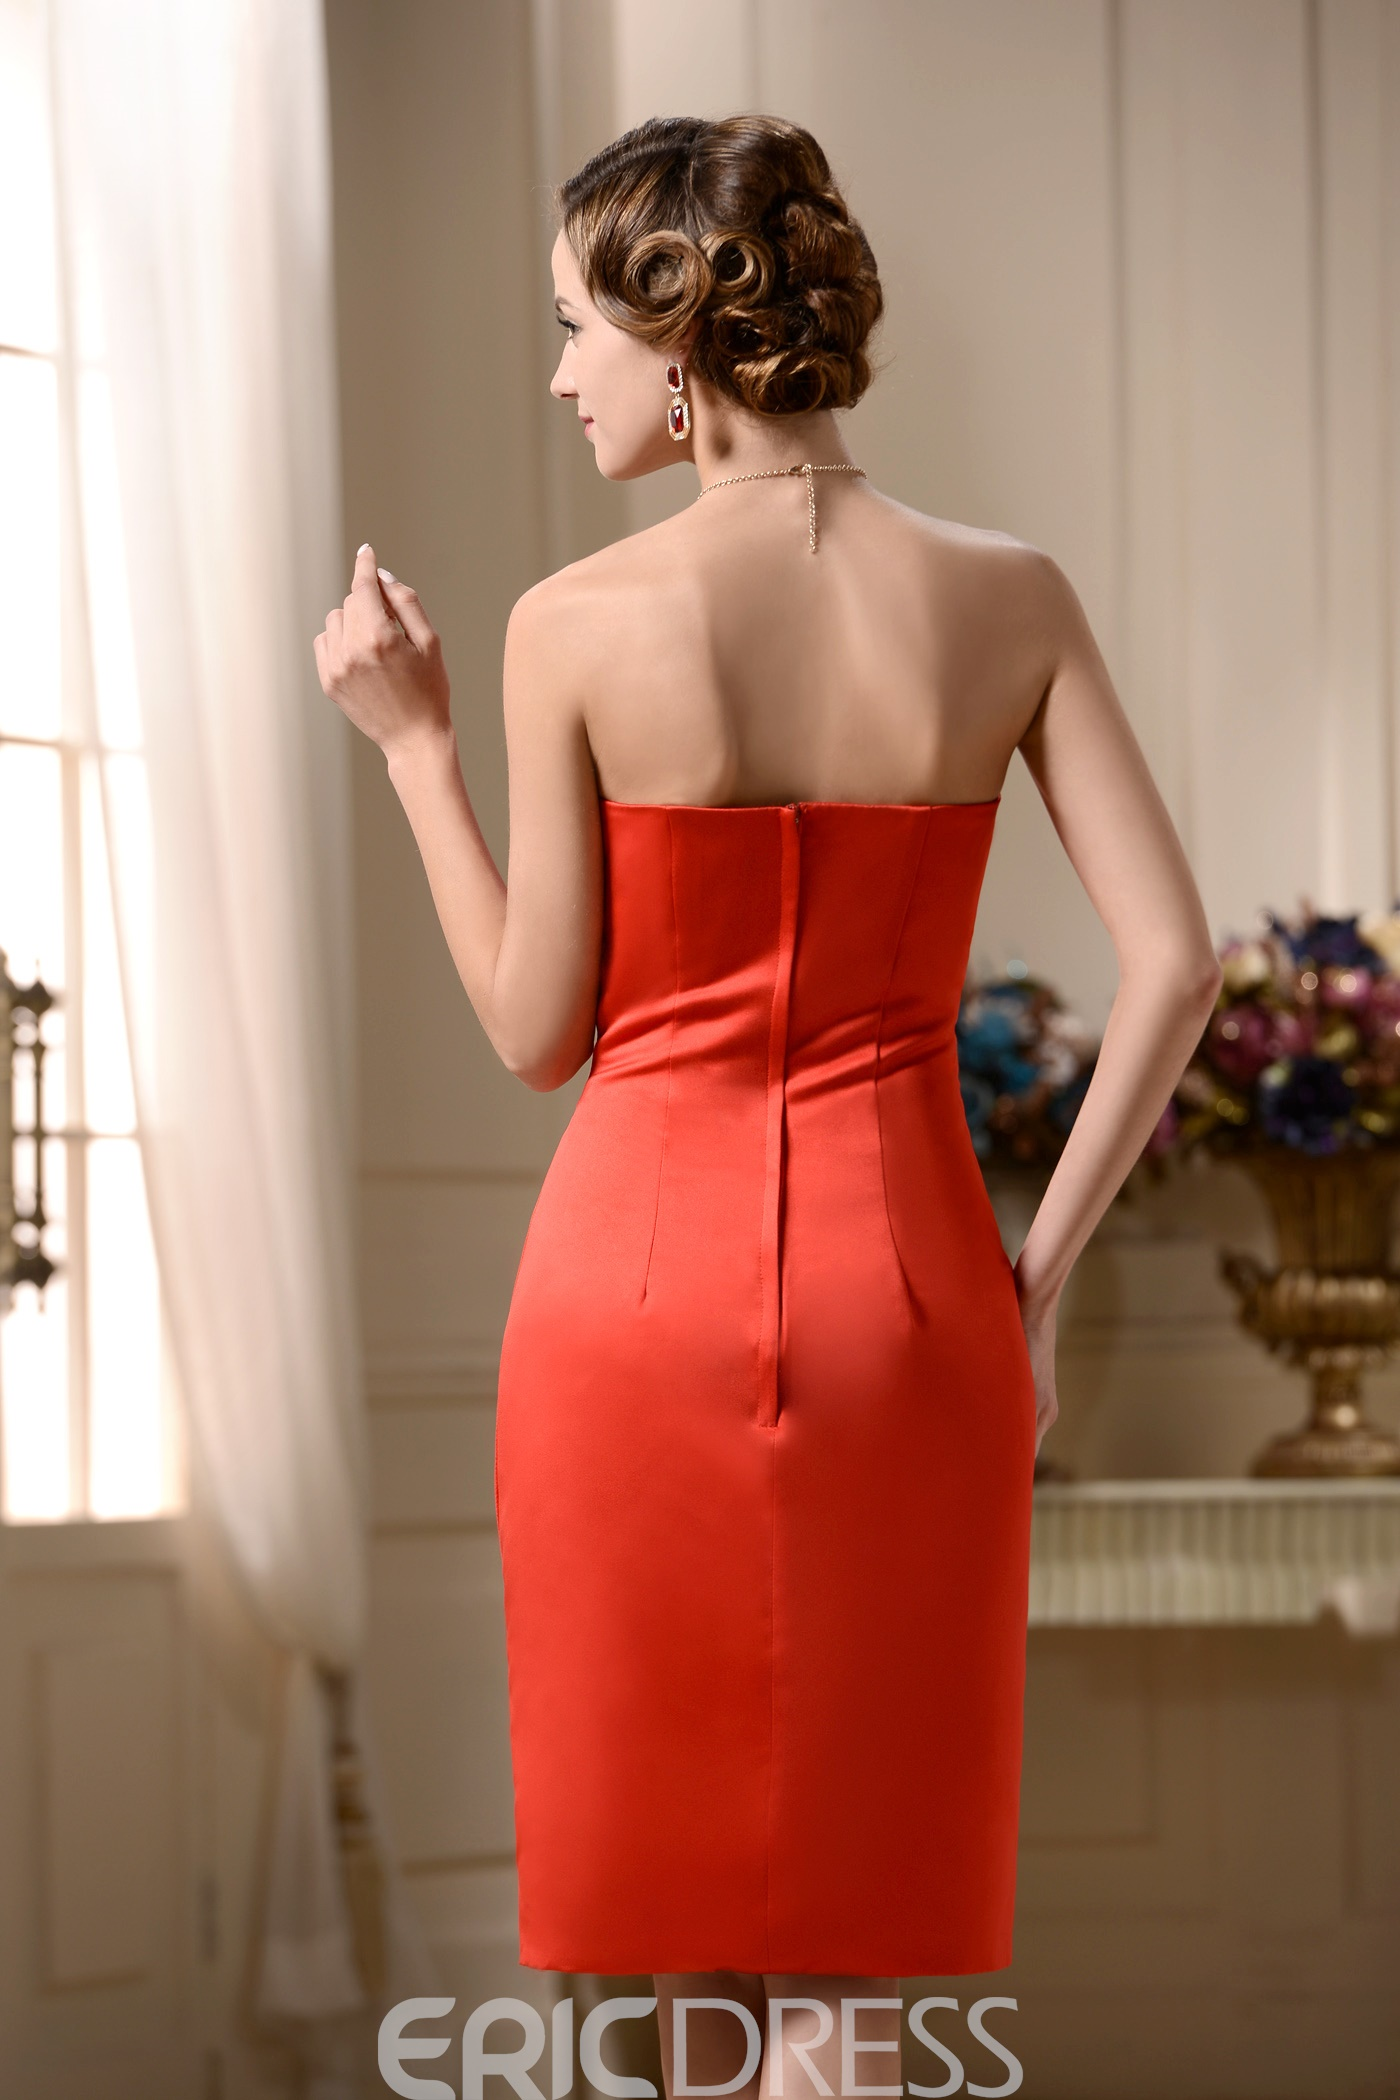 Incredible Sheath/Column Straps Knee-Length Mother of the Bride Dress With Jacket/Shawl